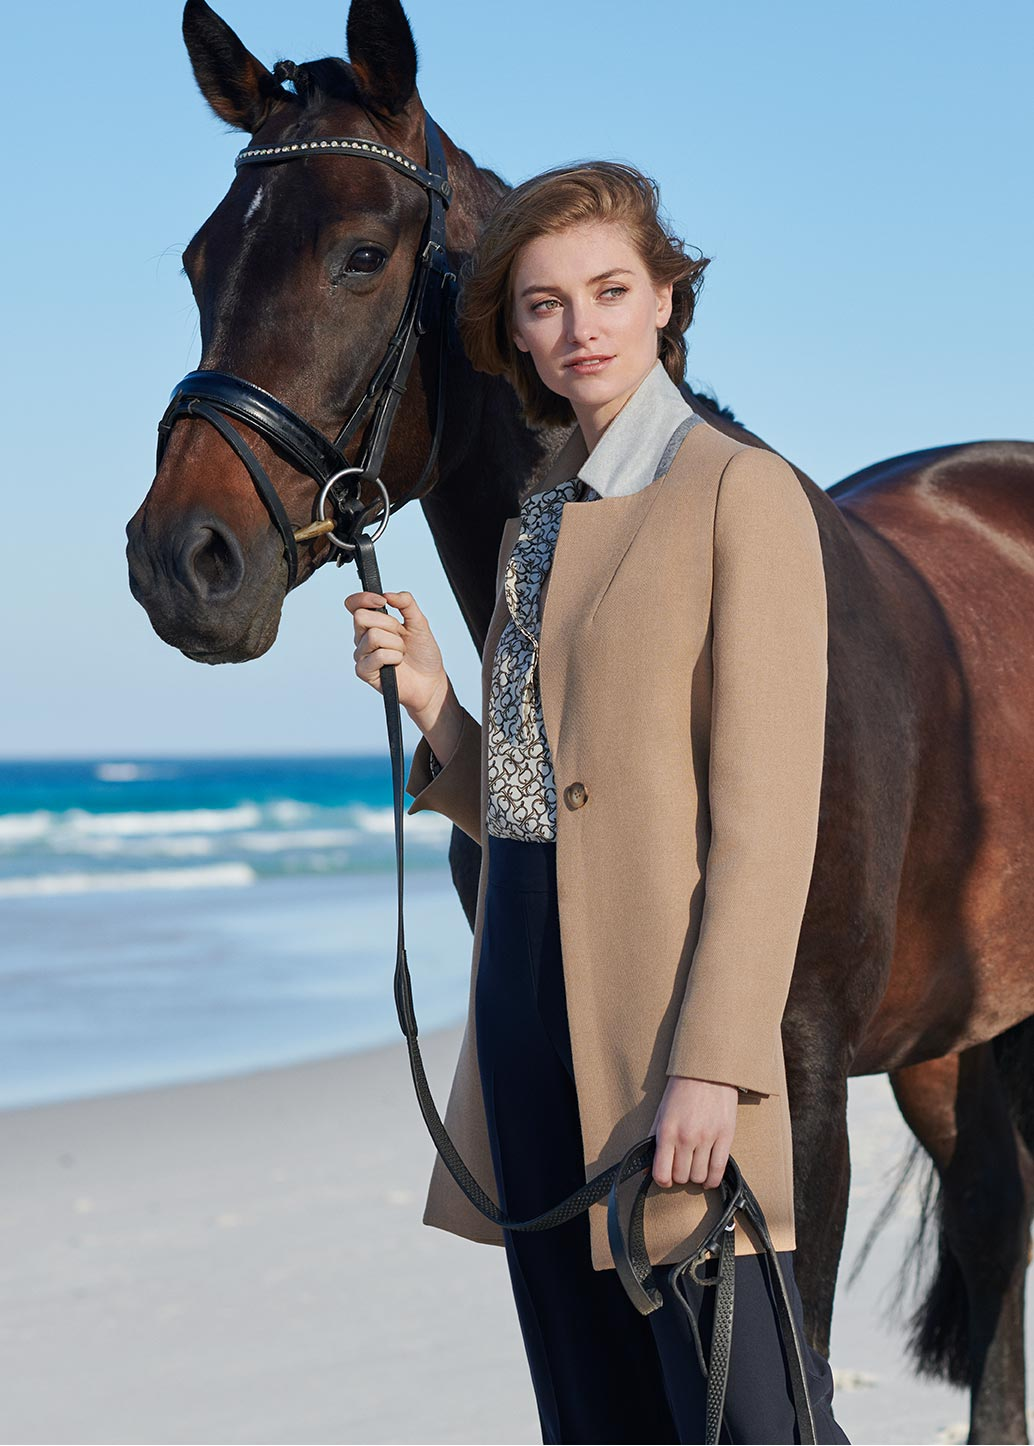 Woman poses in a horse bit print navy blue and gold shirt dress with a horse in a beach